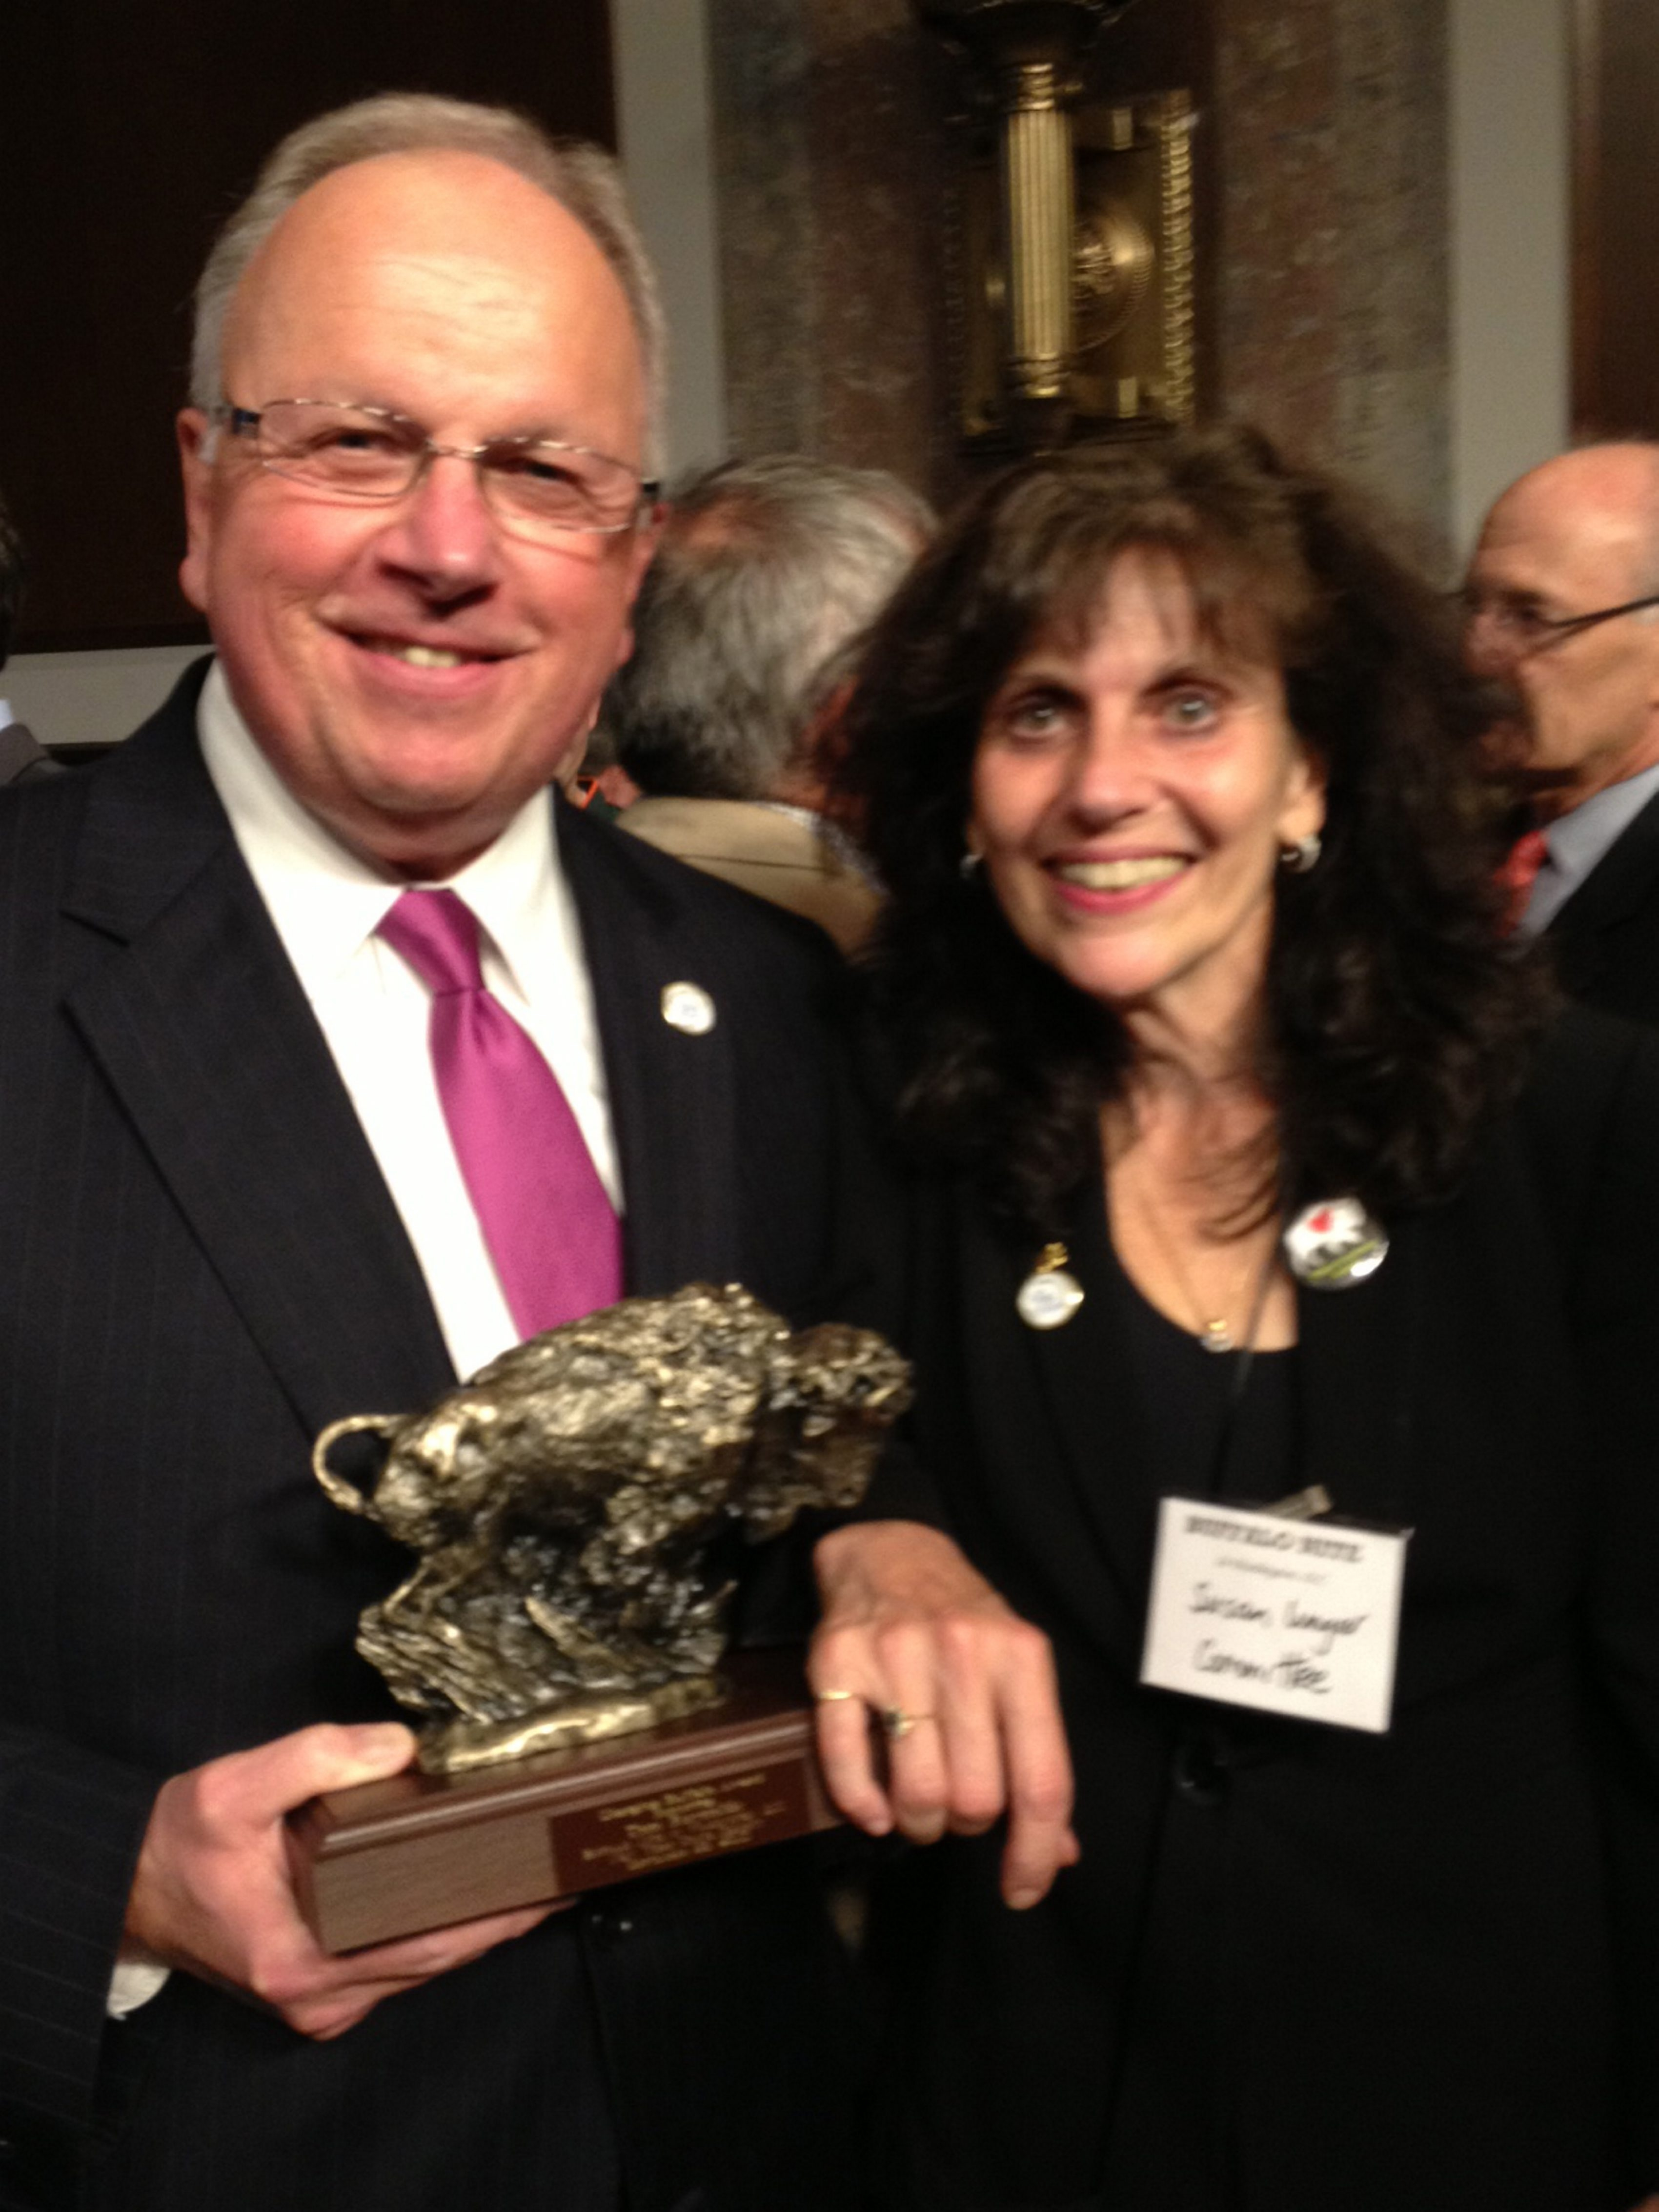 Award winner Thomas M. Reynolds visits with Susan Unger, co-chairwoman of Buffalo Nite in Washington.